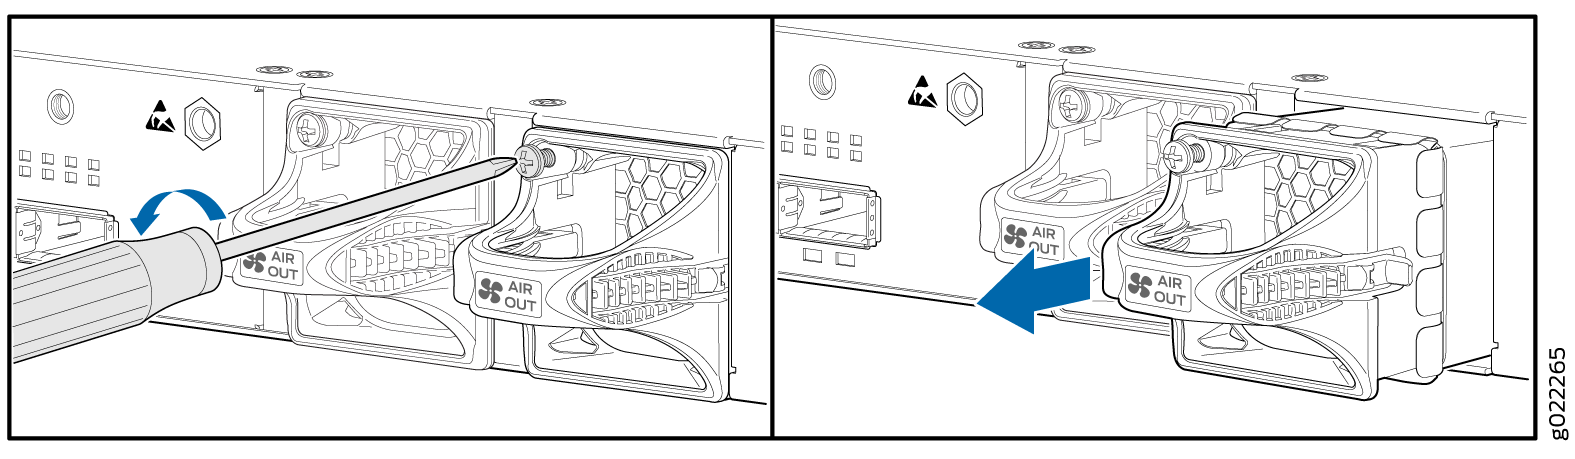 Removing a Fan Module from an EX3400 Switch